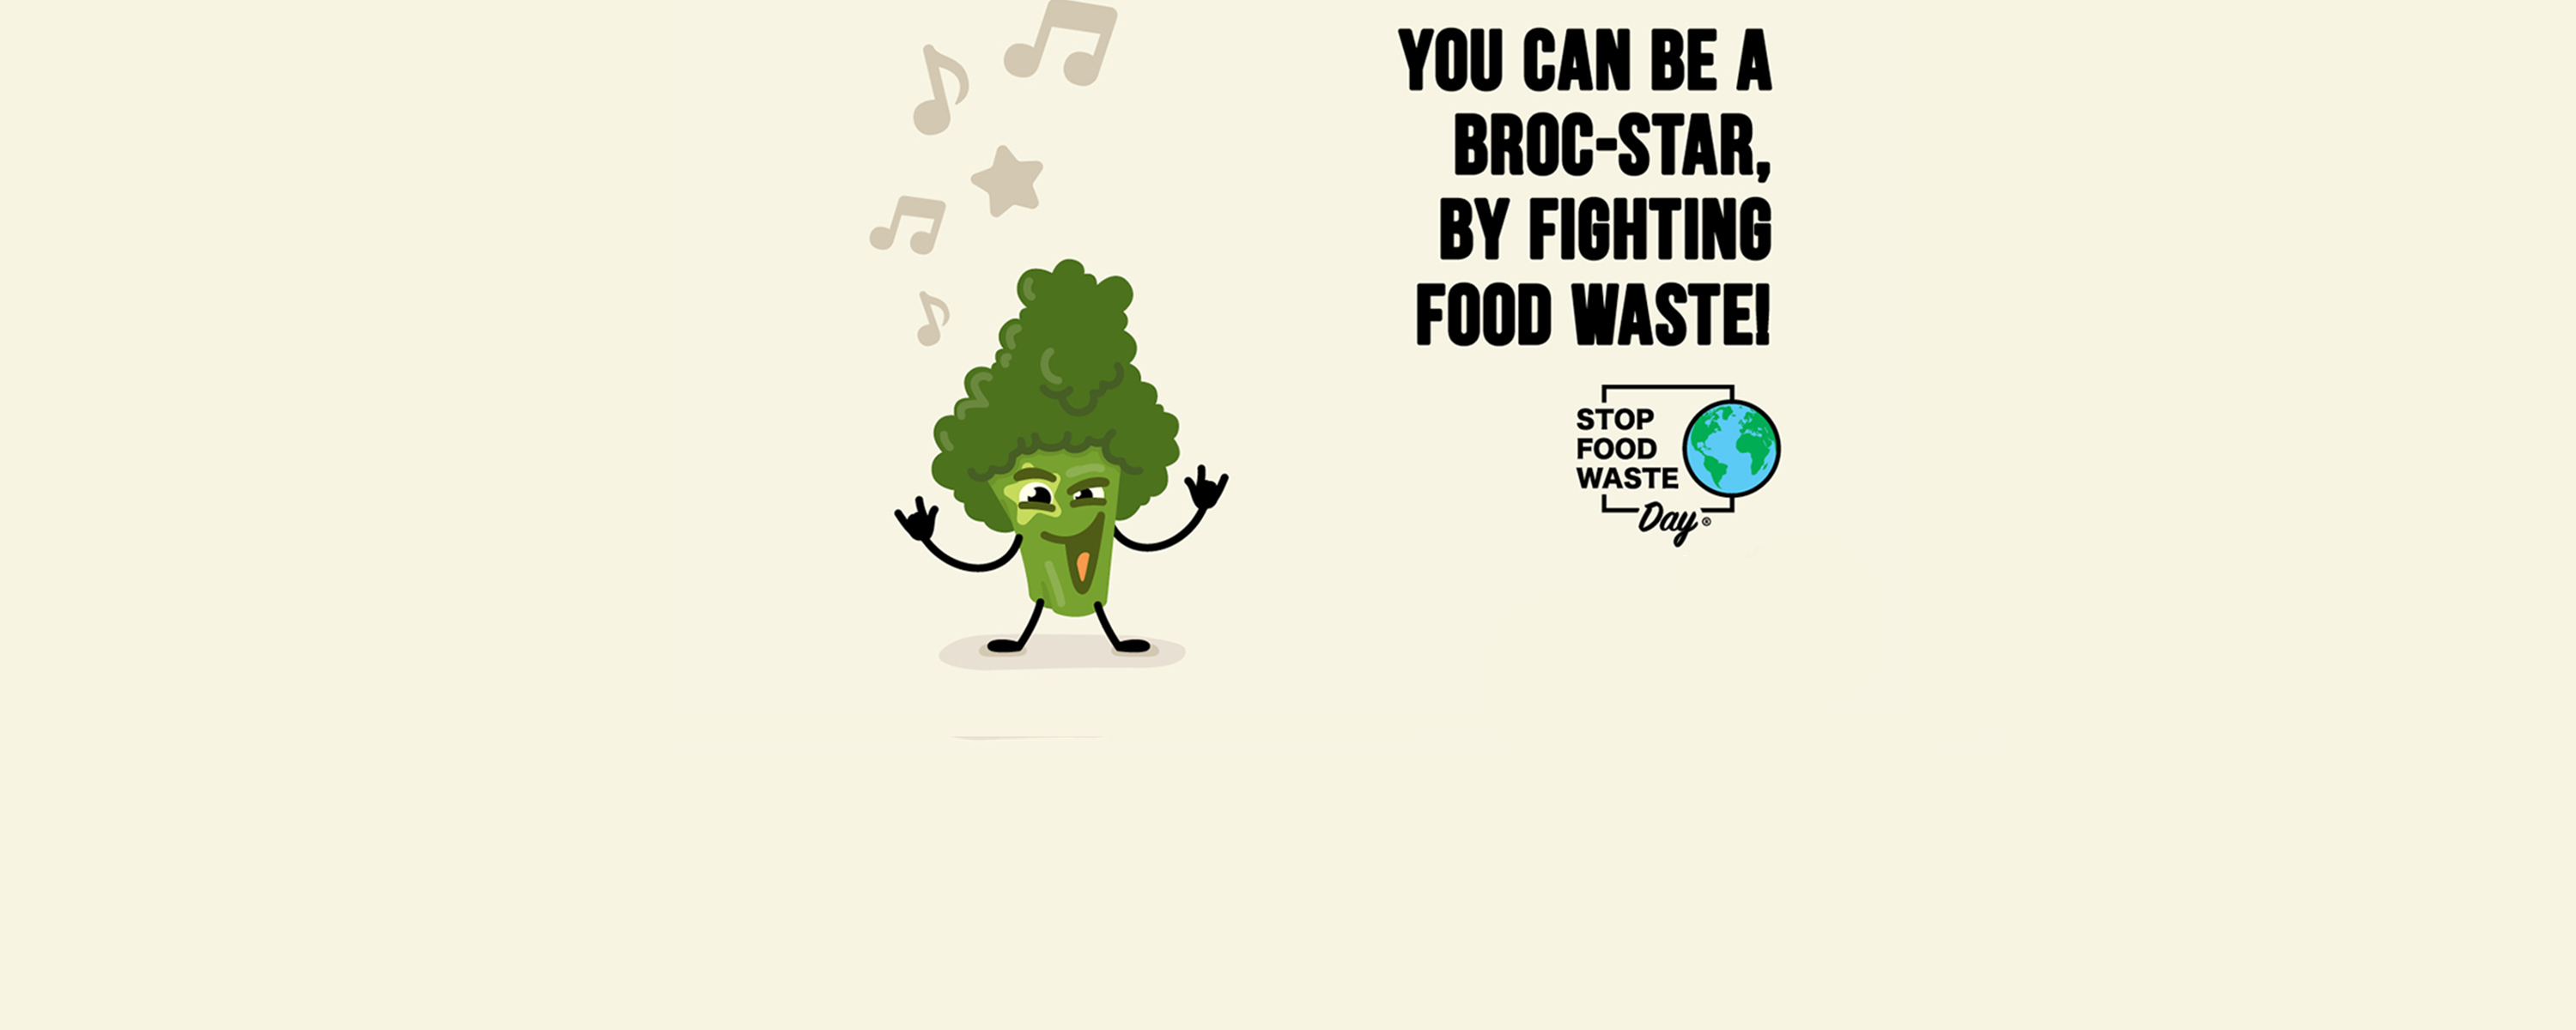 you can be a broc-star, by fighting food waste